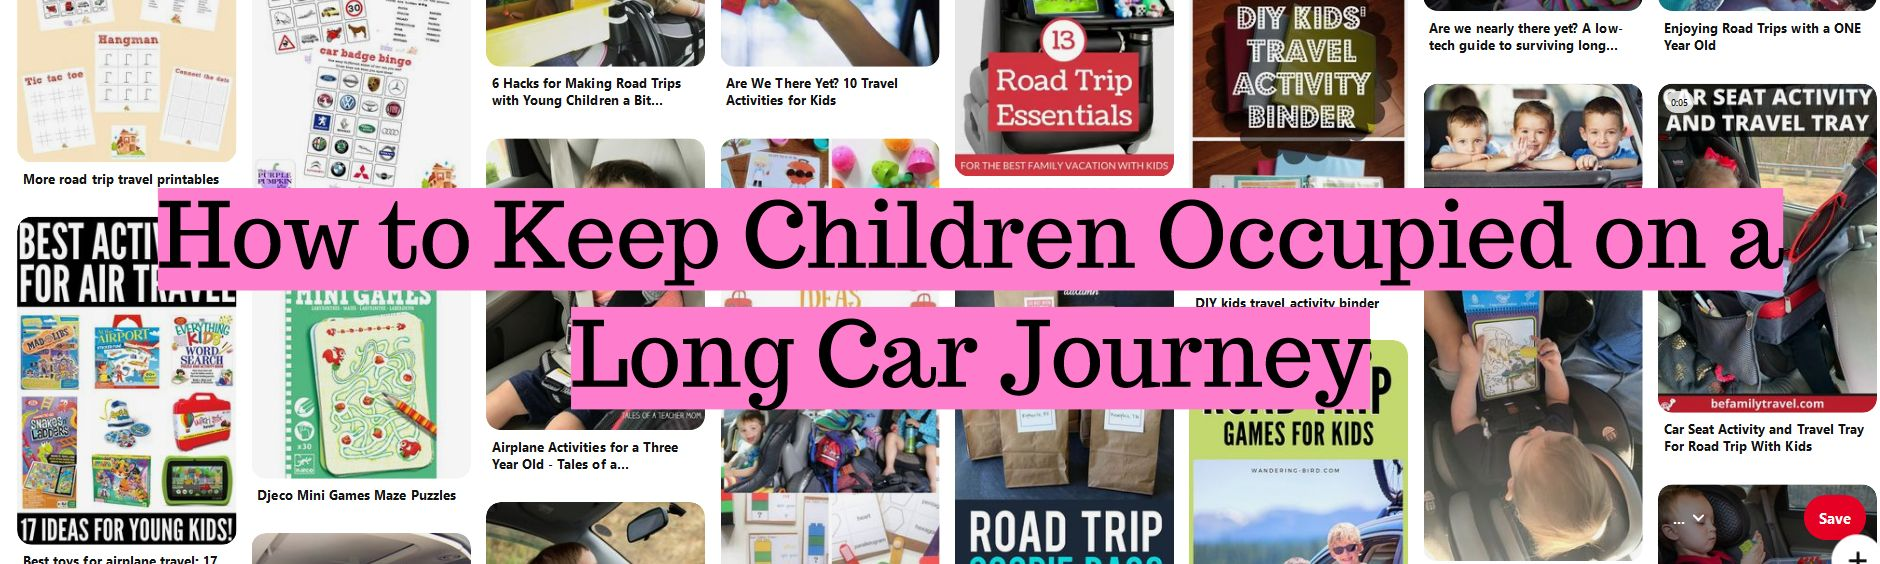 How to Keep Children Occupied on a Long Car Journey